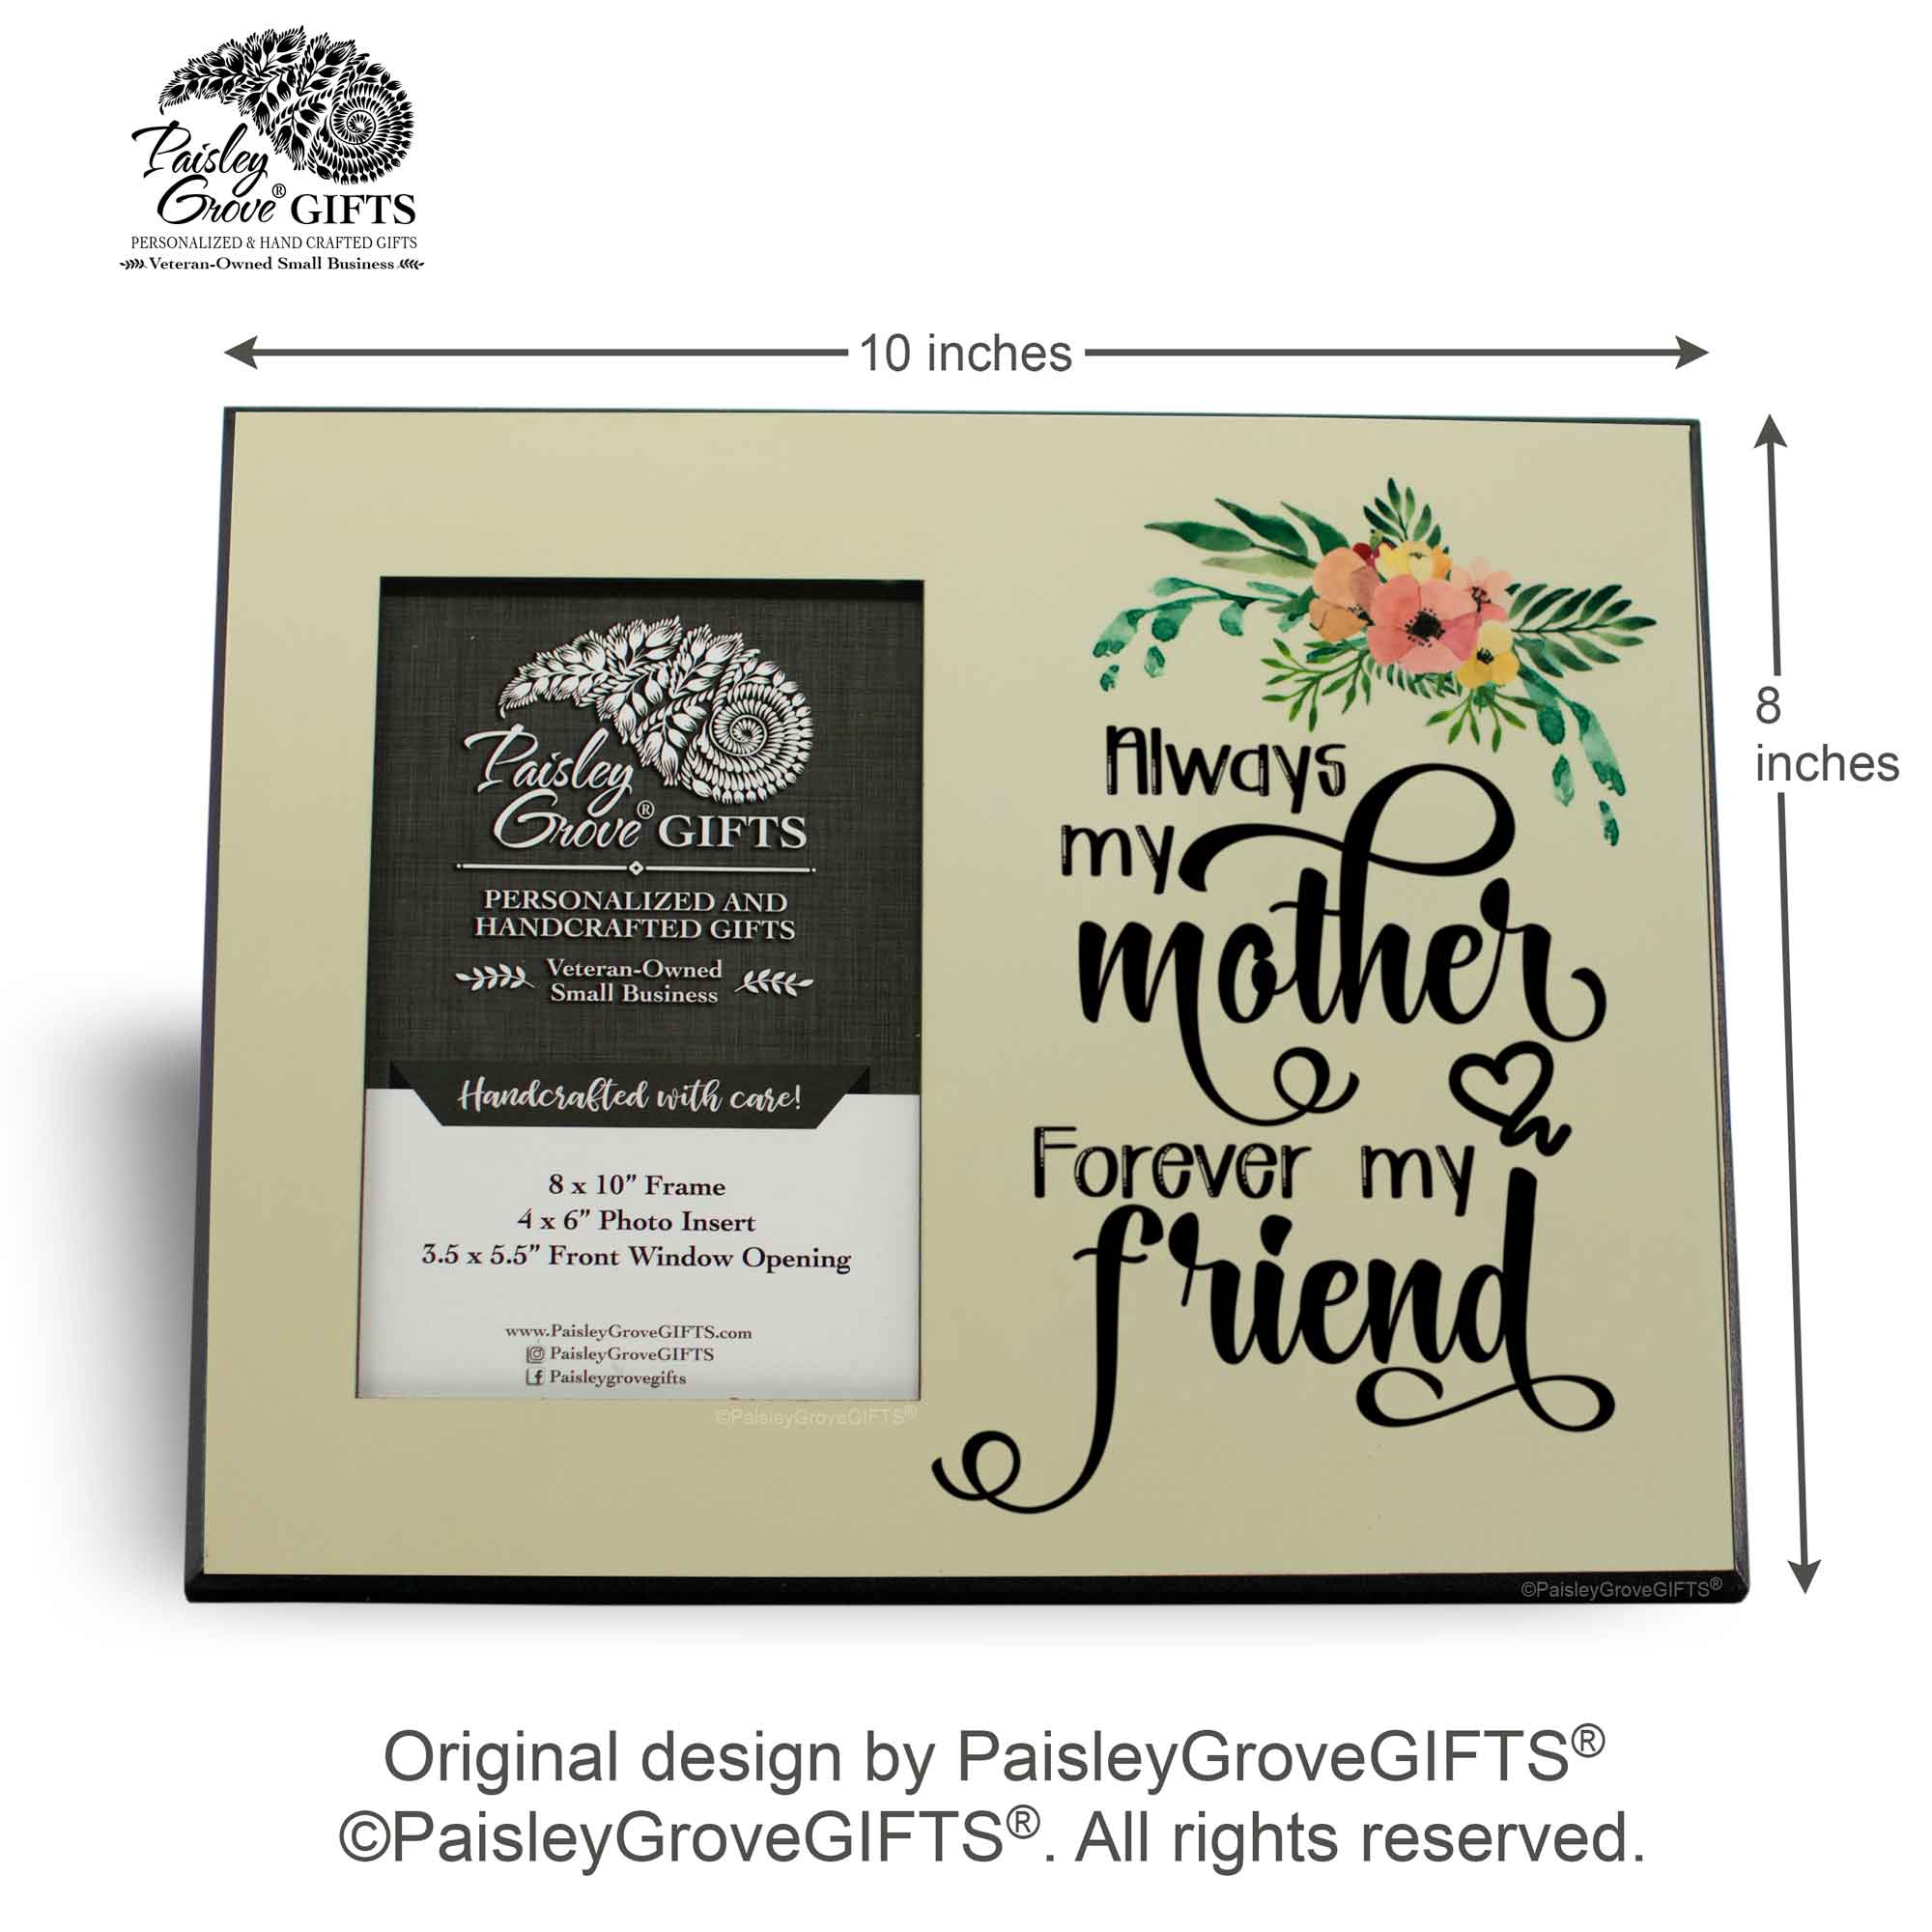 CopyrightPaisleyGroveGIFTS S201d Measurements for Meaningful Mom Gift with Loving Mom Quote